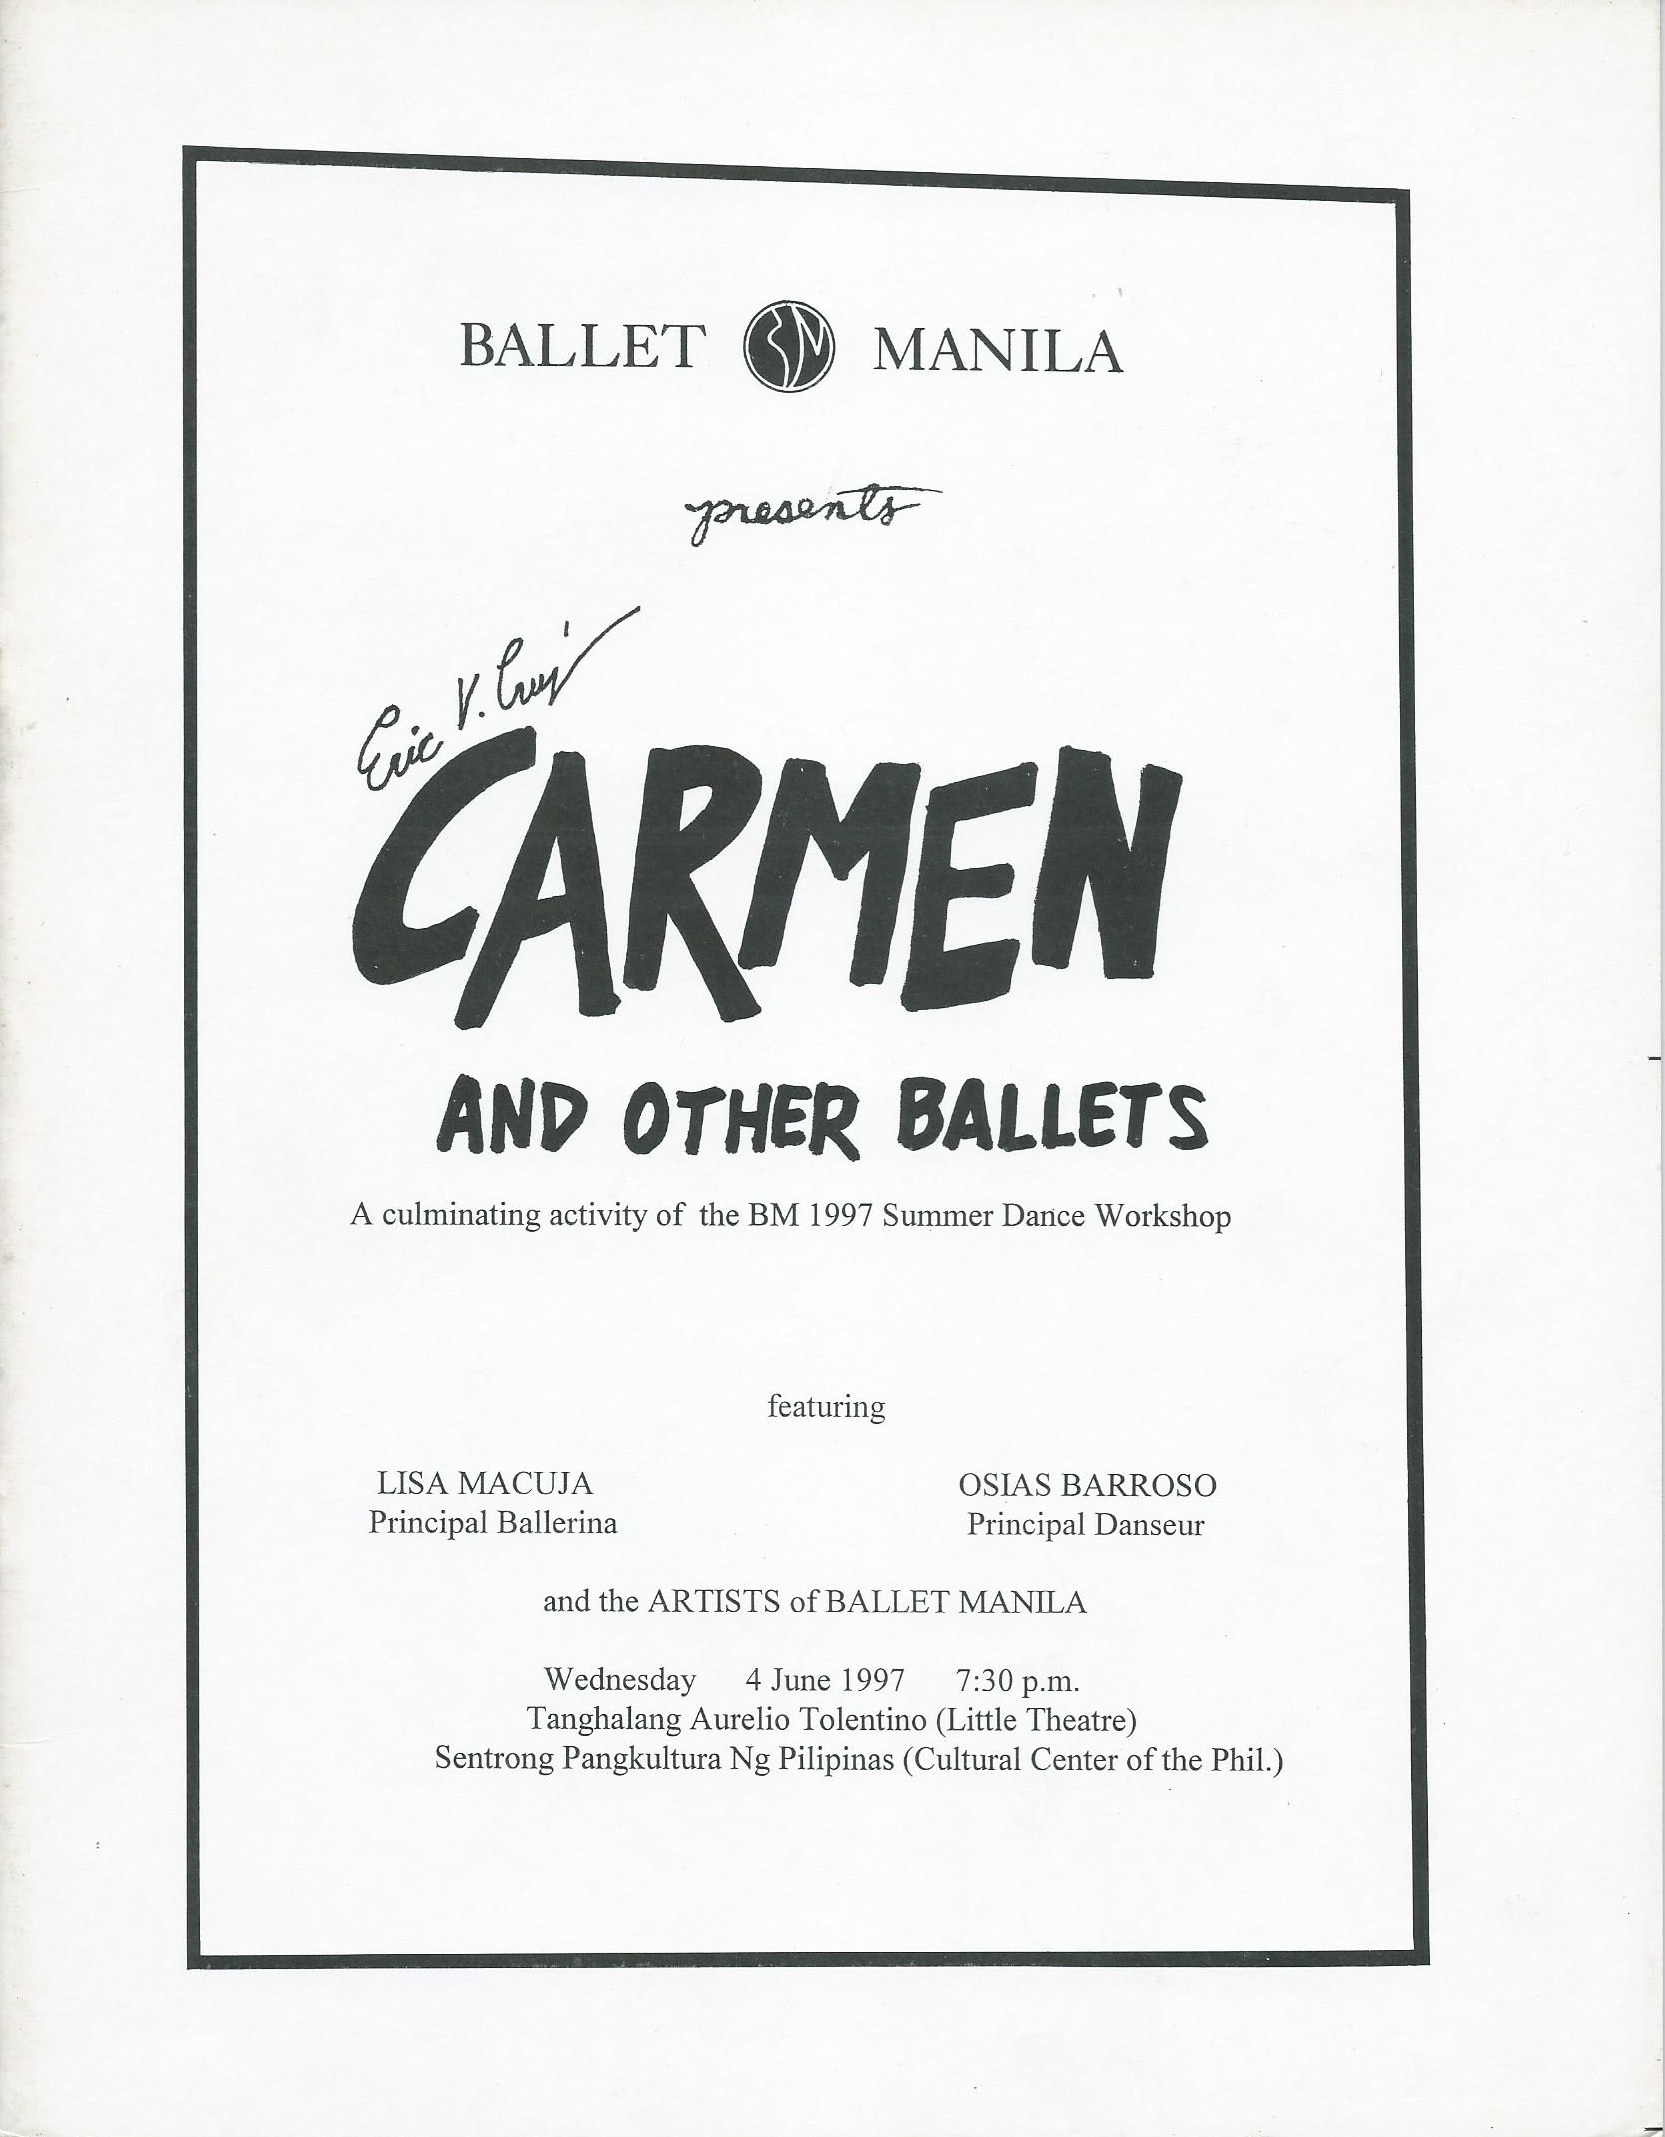 The cover of the souvenir program of the Ballet Manila School's final activity to cap its first summer workshop in 1997. Photo courtesy of the Ballet Manila Archives